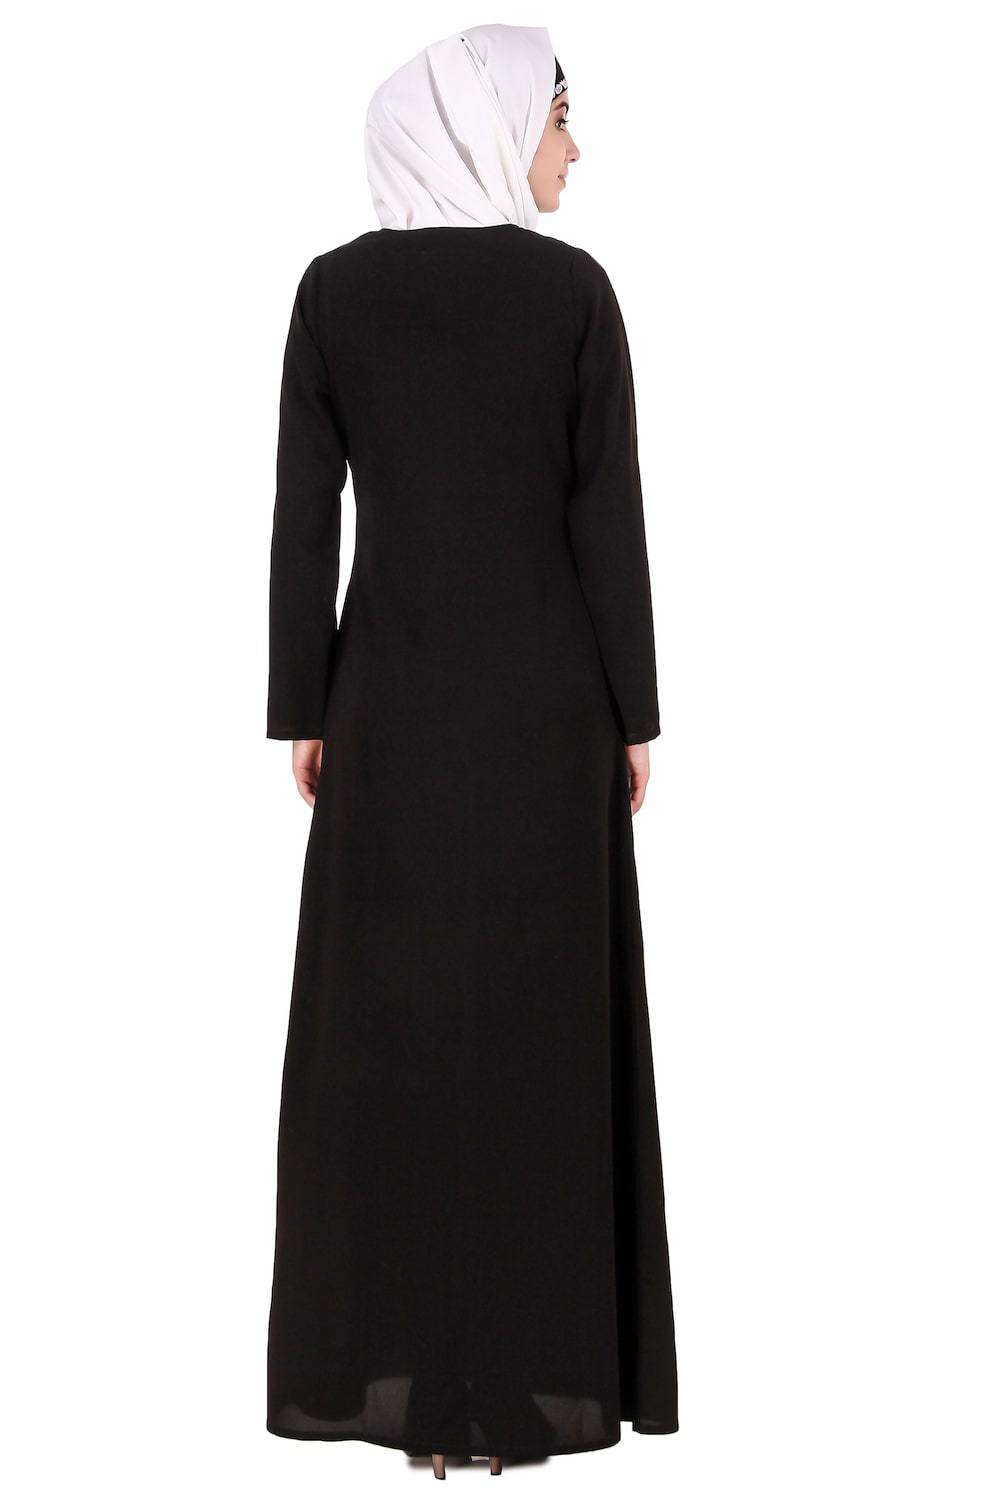 Black Leaf and Flower Embellished Black Nida Abaya